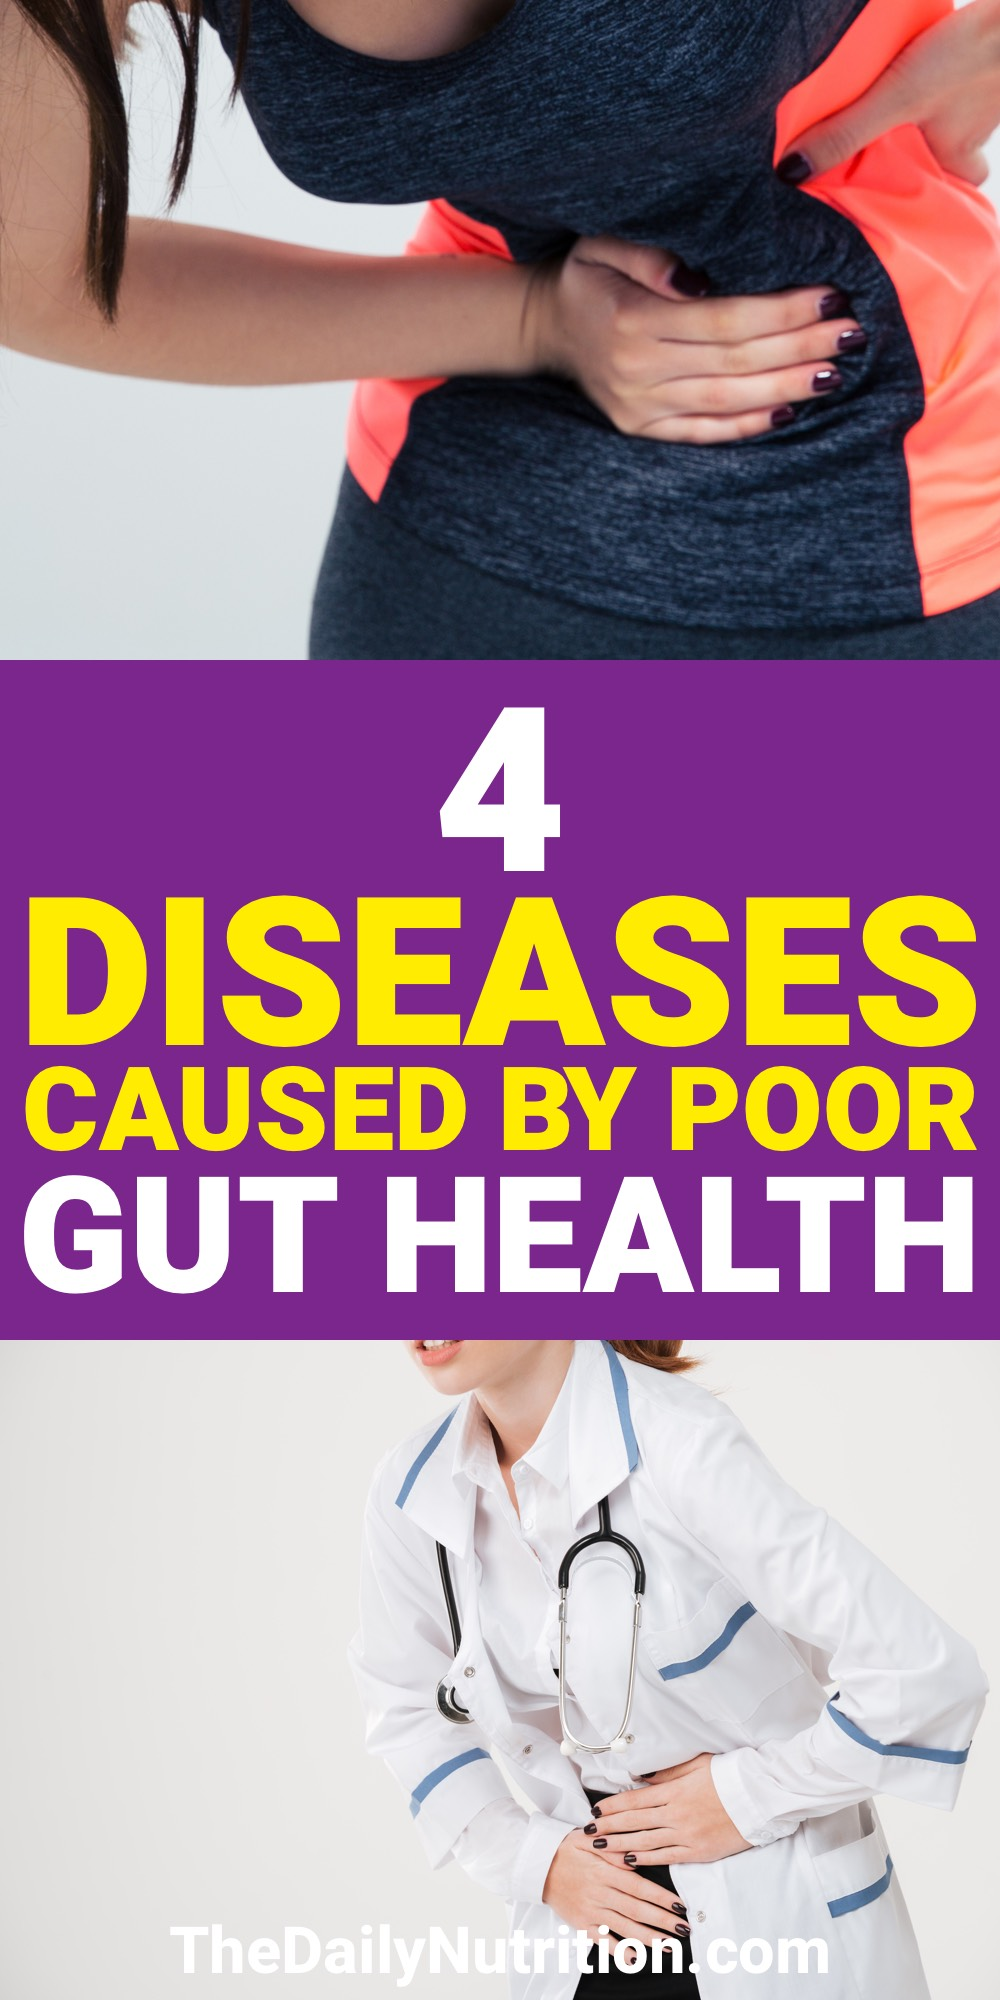 Your gut health is important. If you have poor gut health you will be at a higher risk for disease. Here is the relation between poor gut health and disease.